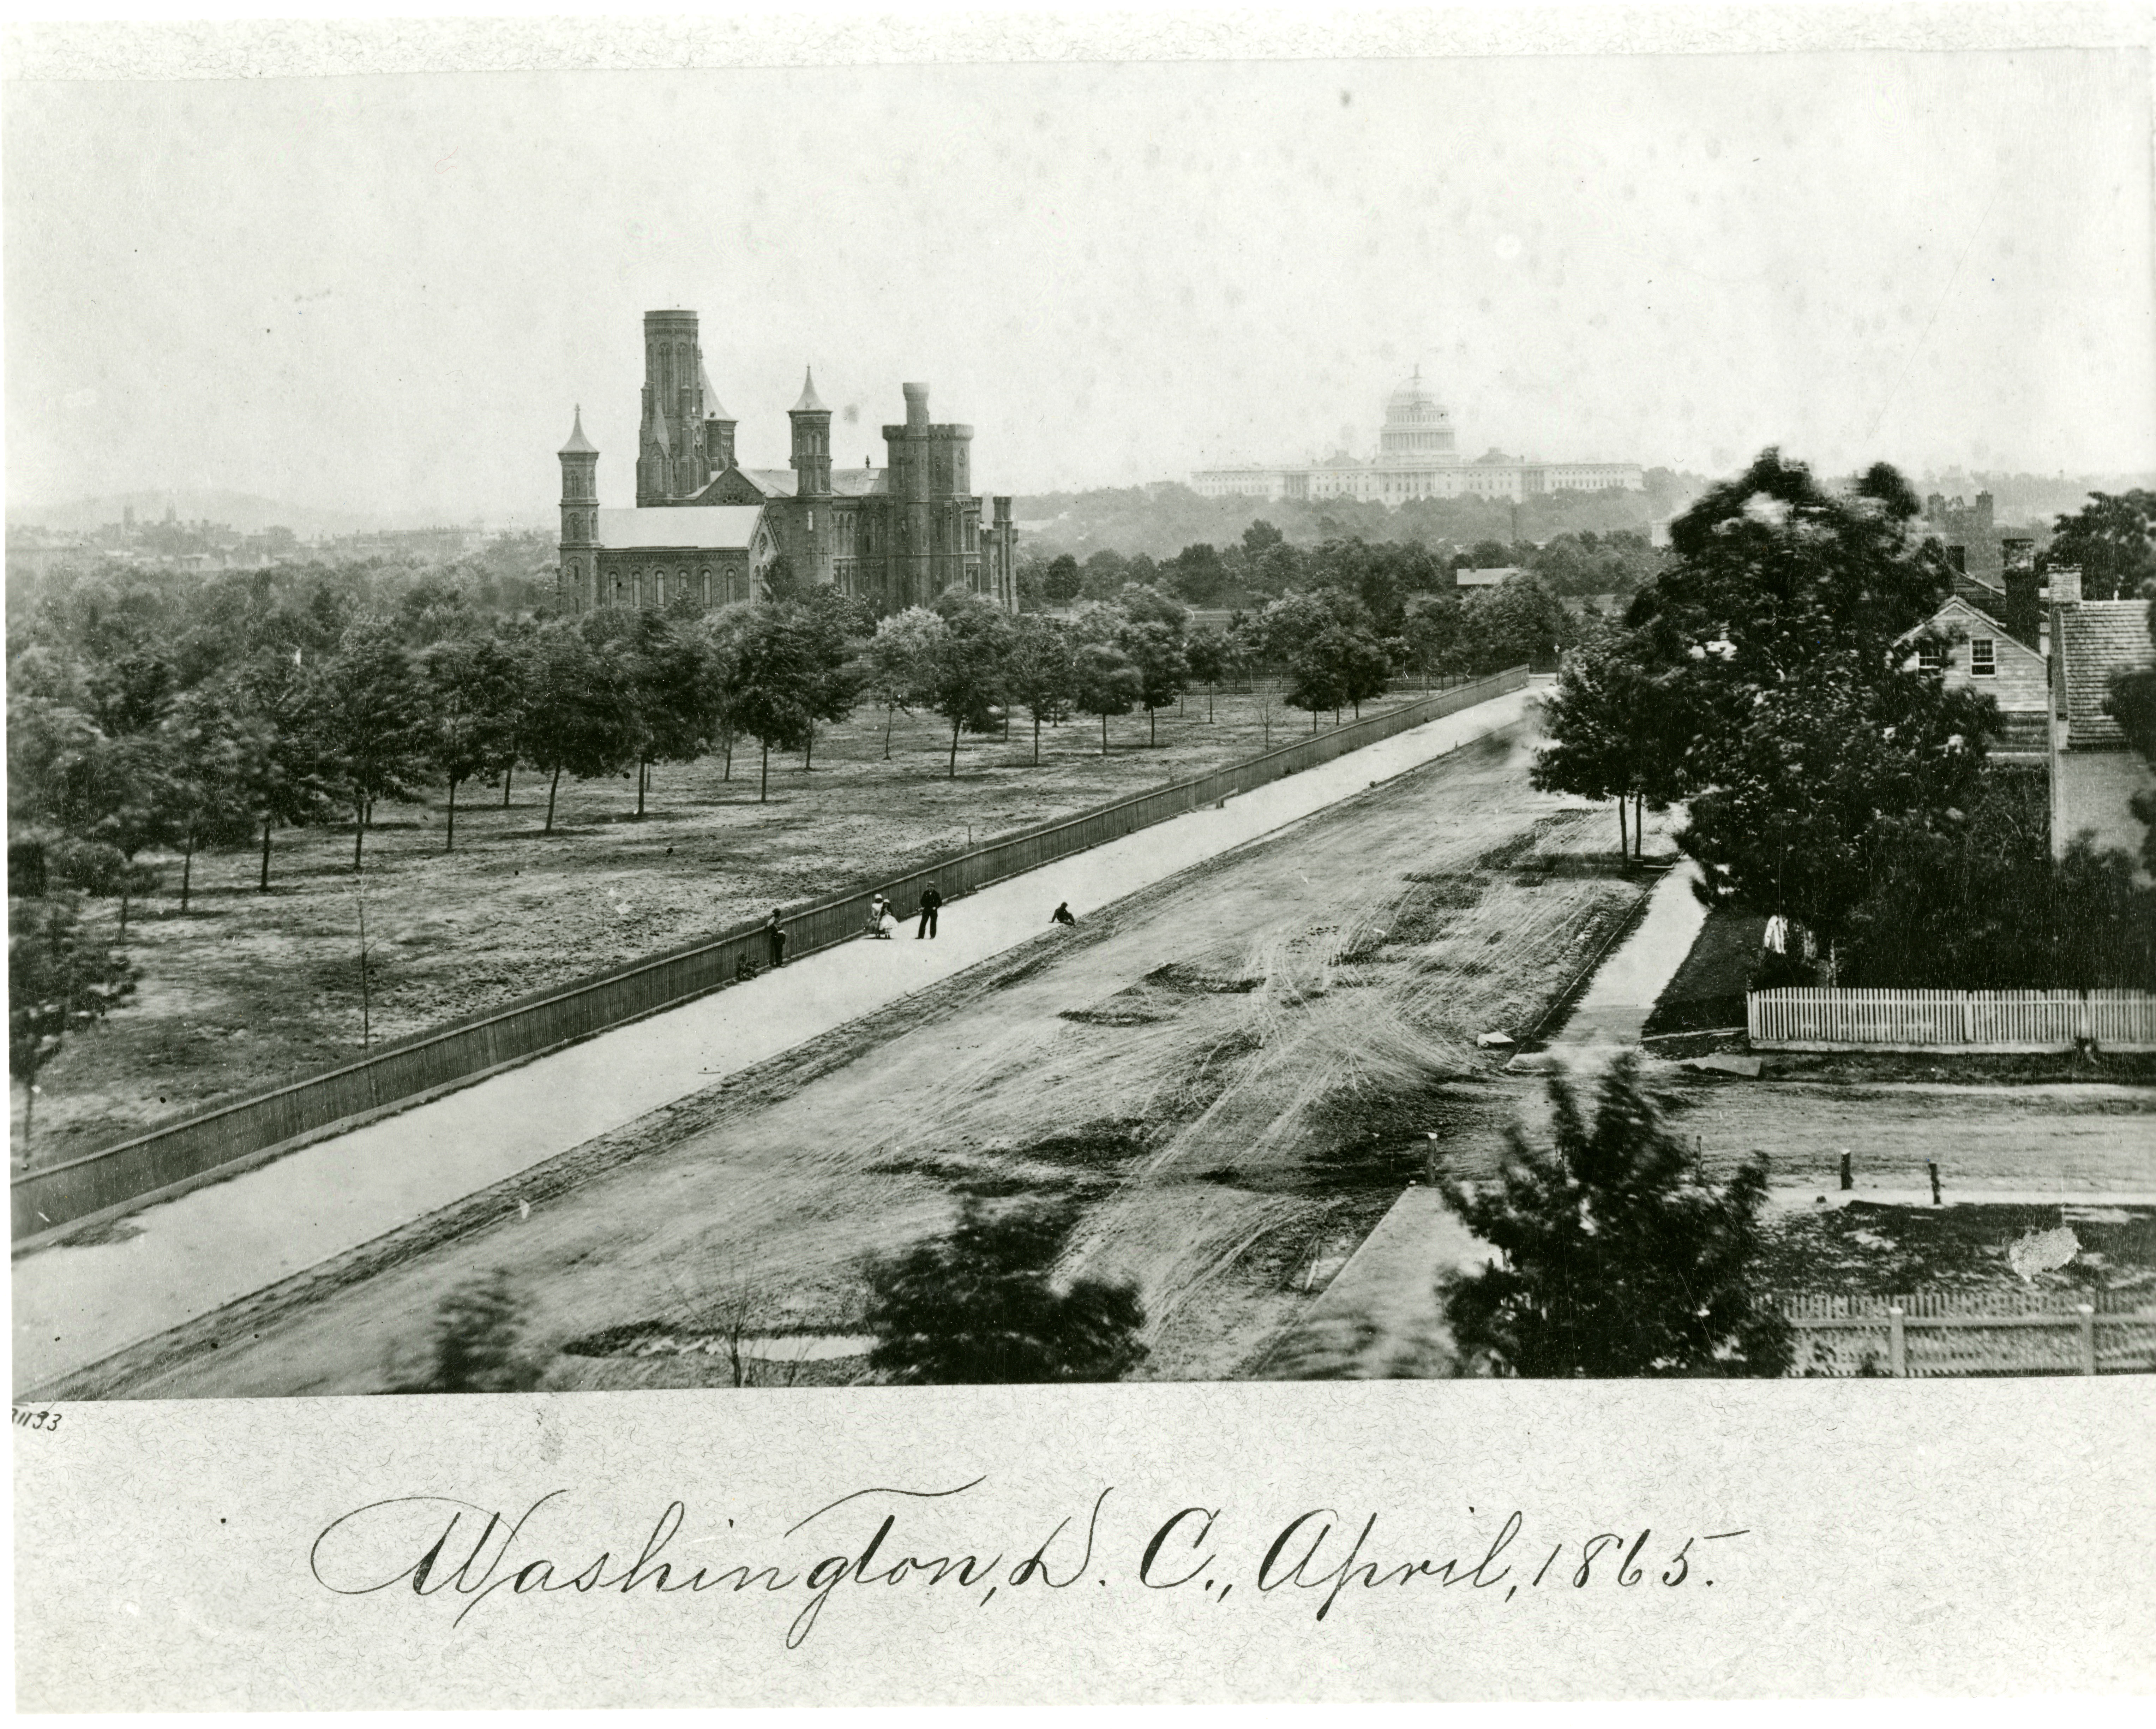 View of the Smithsonian Institution Building with a dirt road.